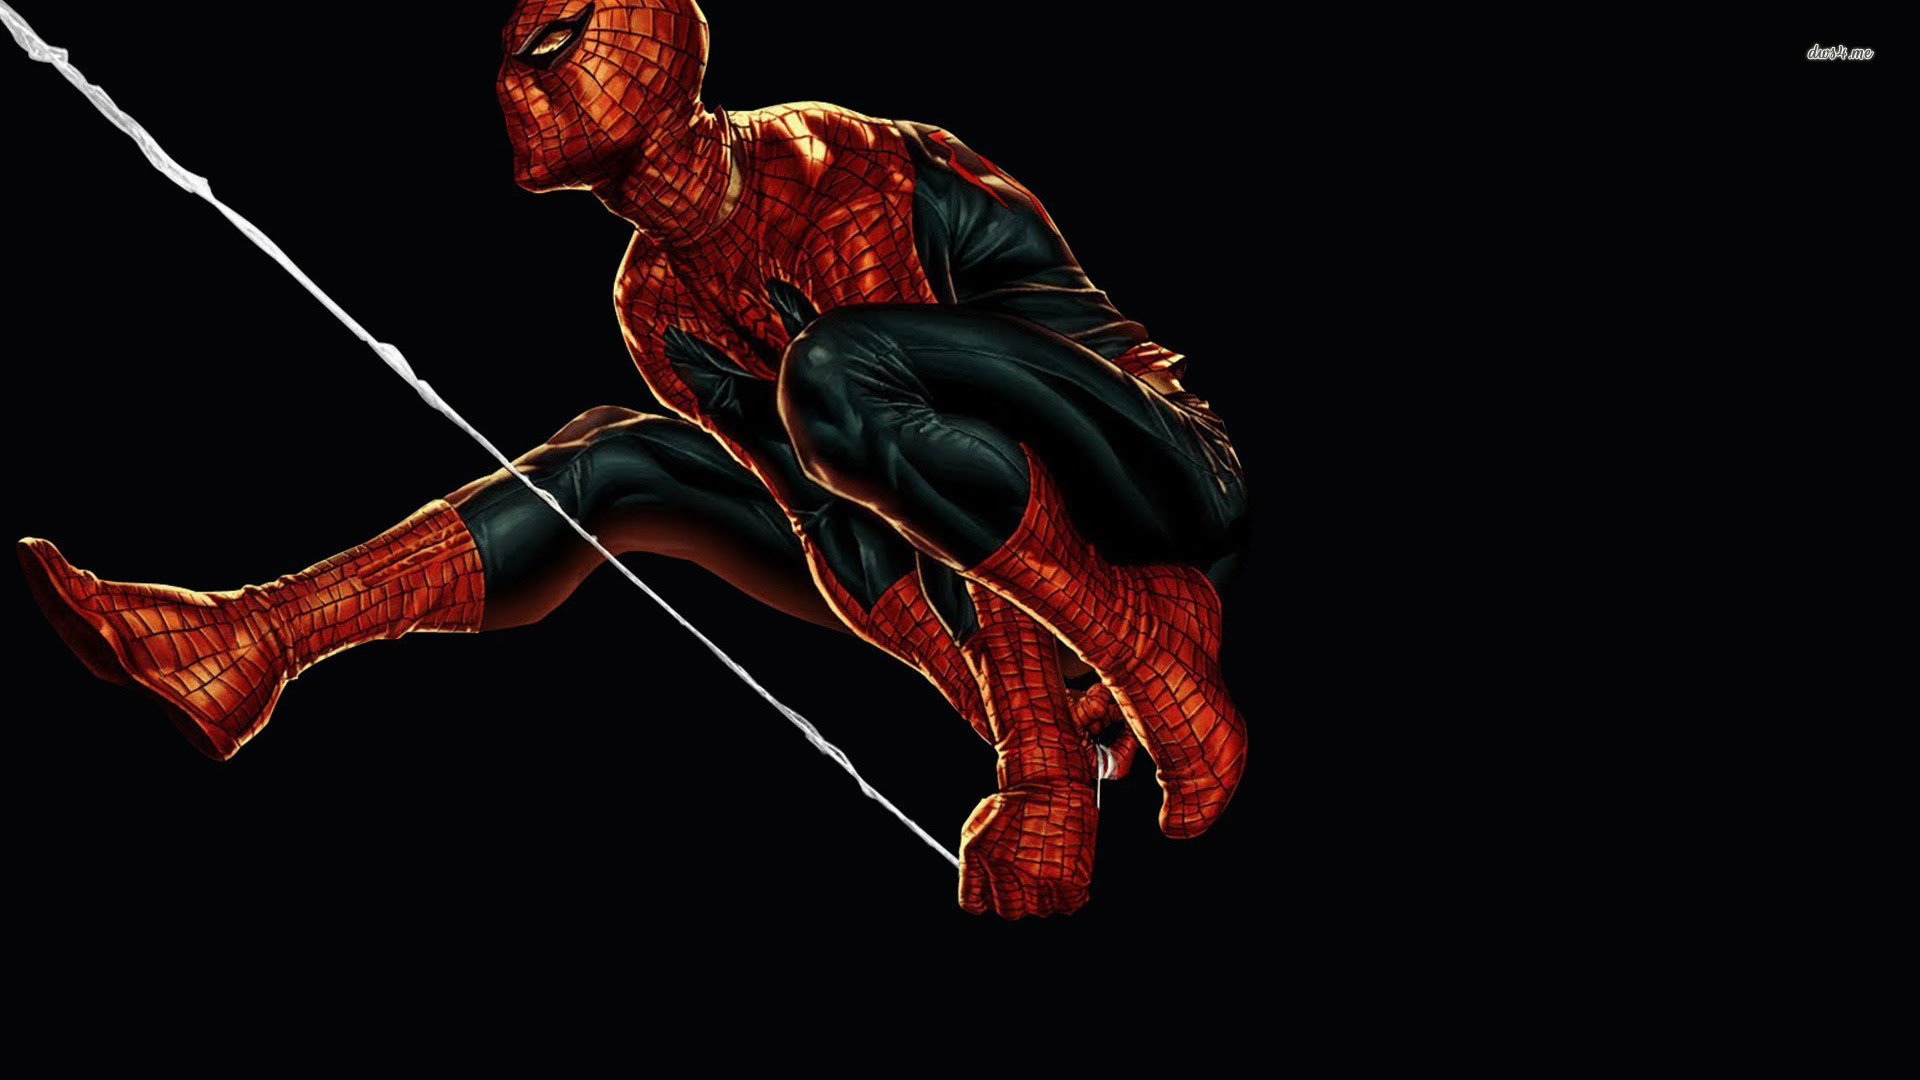 Spiderman Wallpaper For Pc Full Hd Pictures 1920x1080